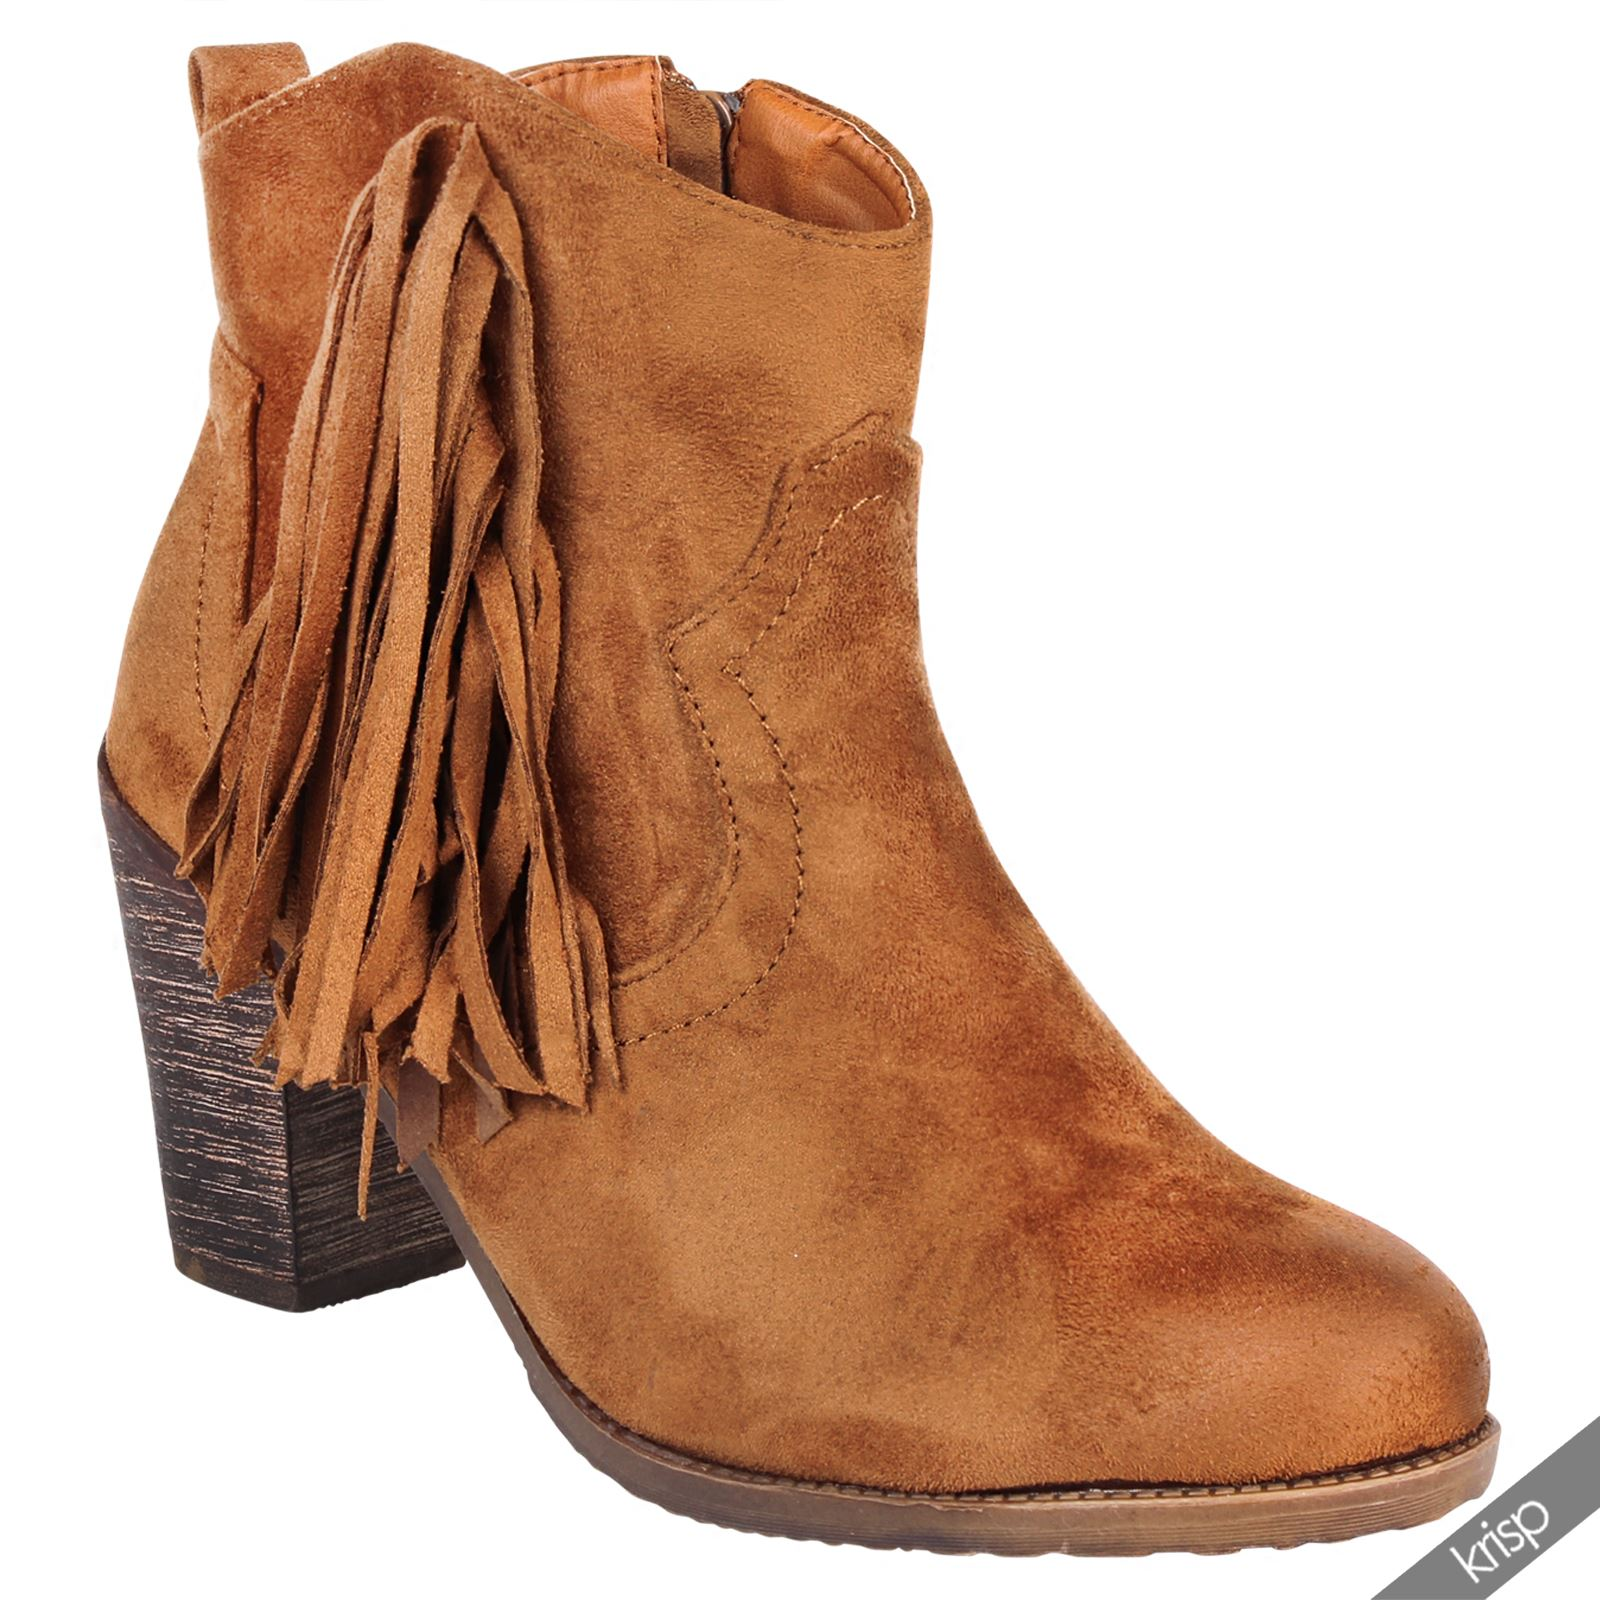 womens boho fringed suede cowboy ankle boots mid high